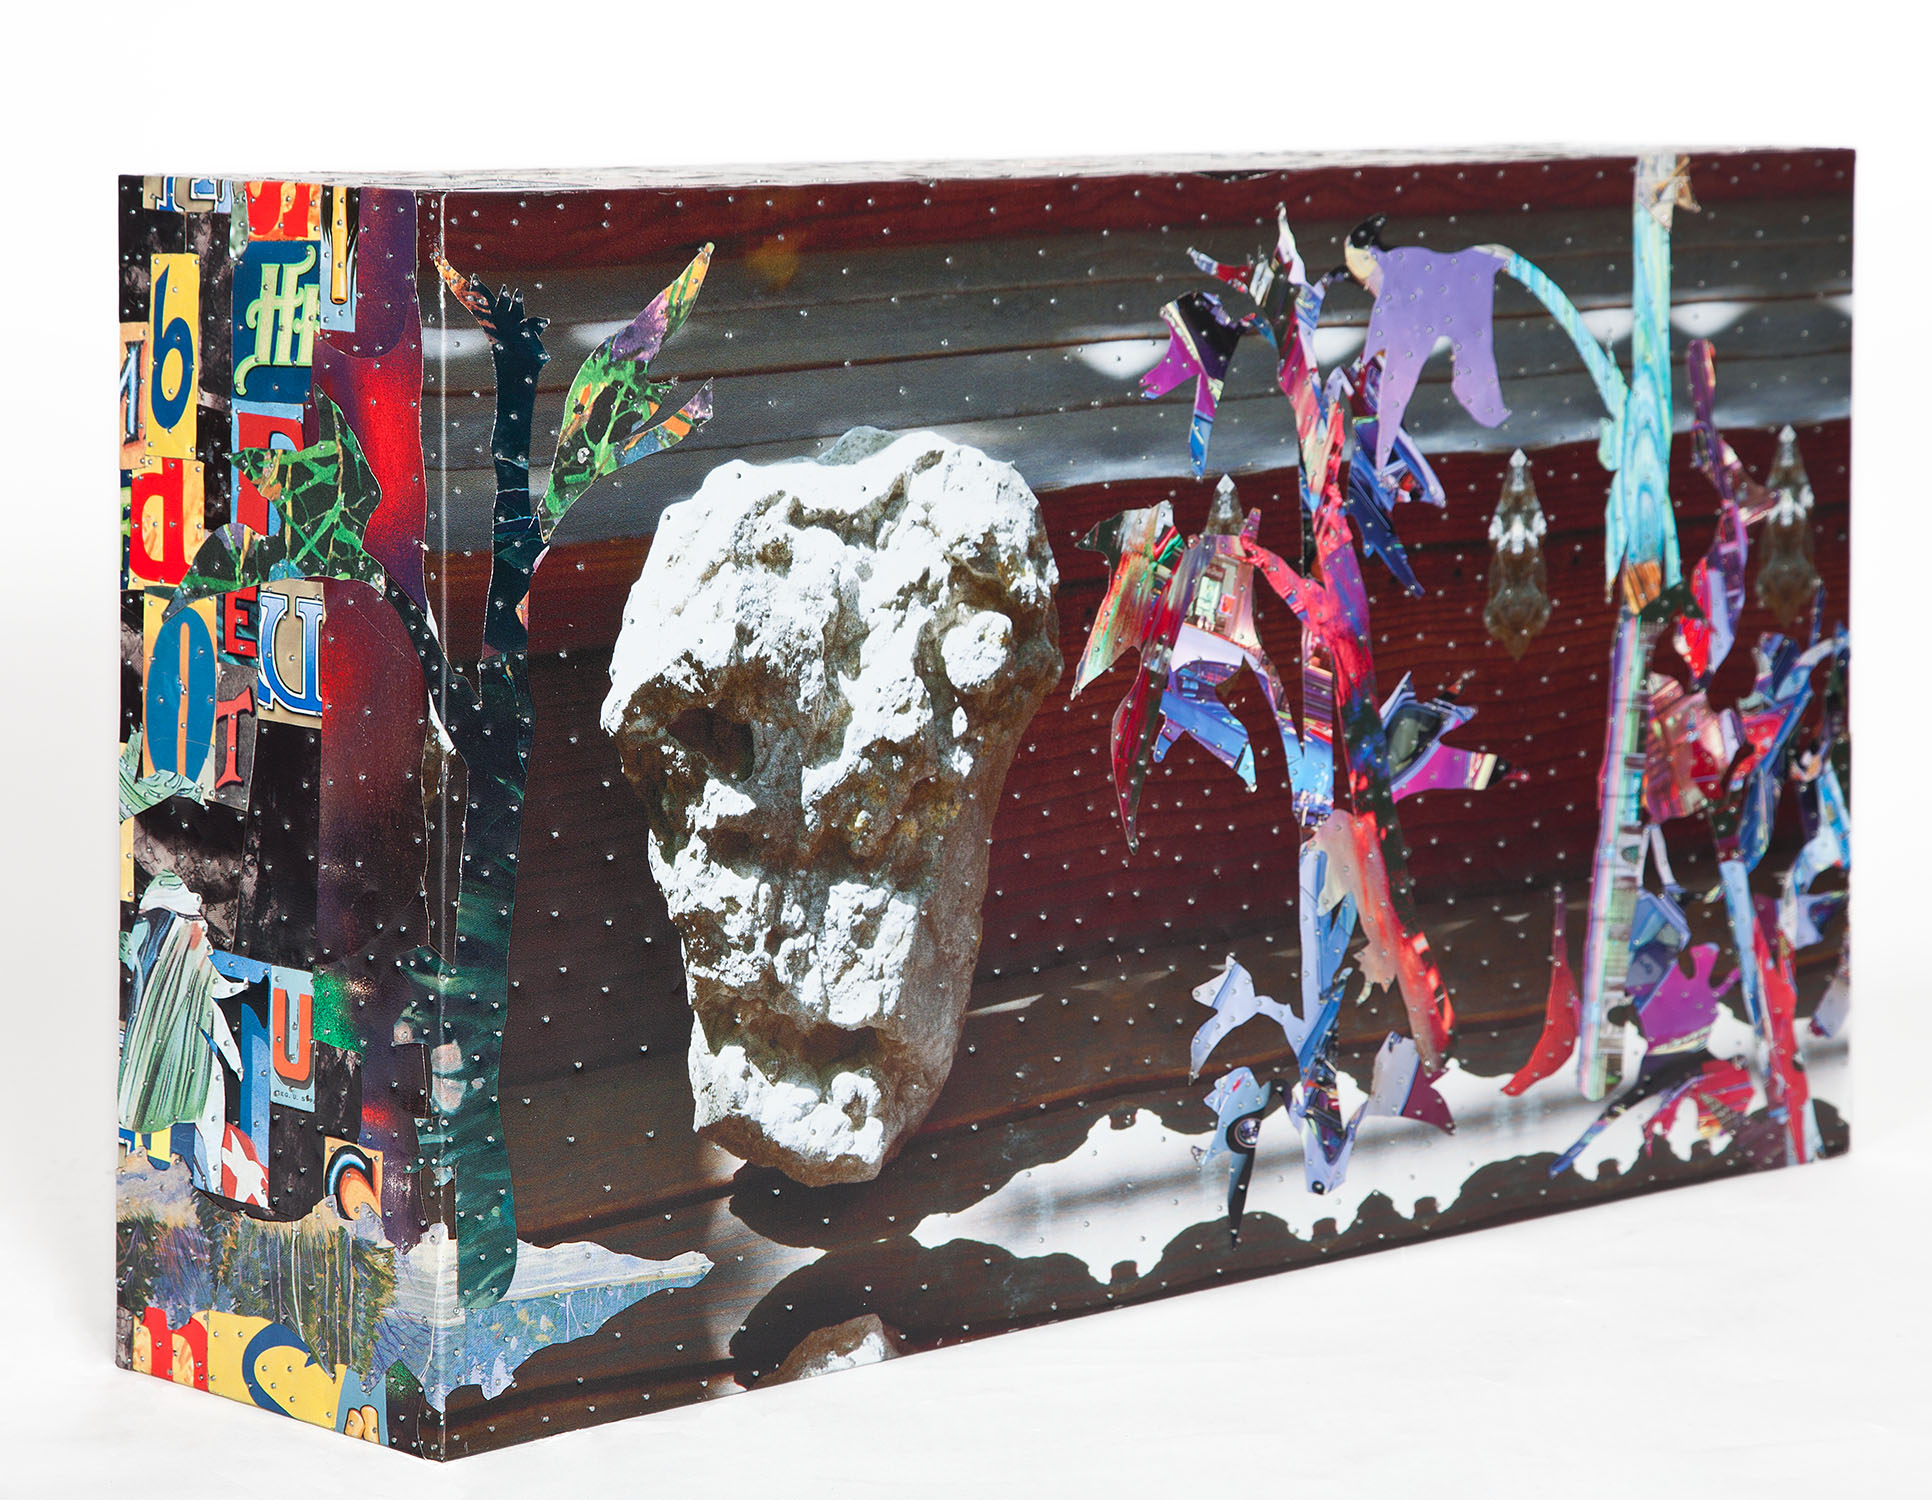 """Tony Berlant, """"Side Man,"""" 2017, found and fabricated printed tin collaged on plywood with steel brads, 15 1/2 x 27 x 6 1/2inches"""